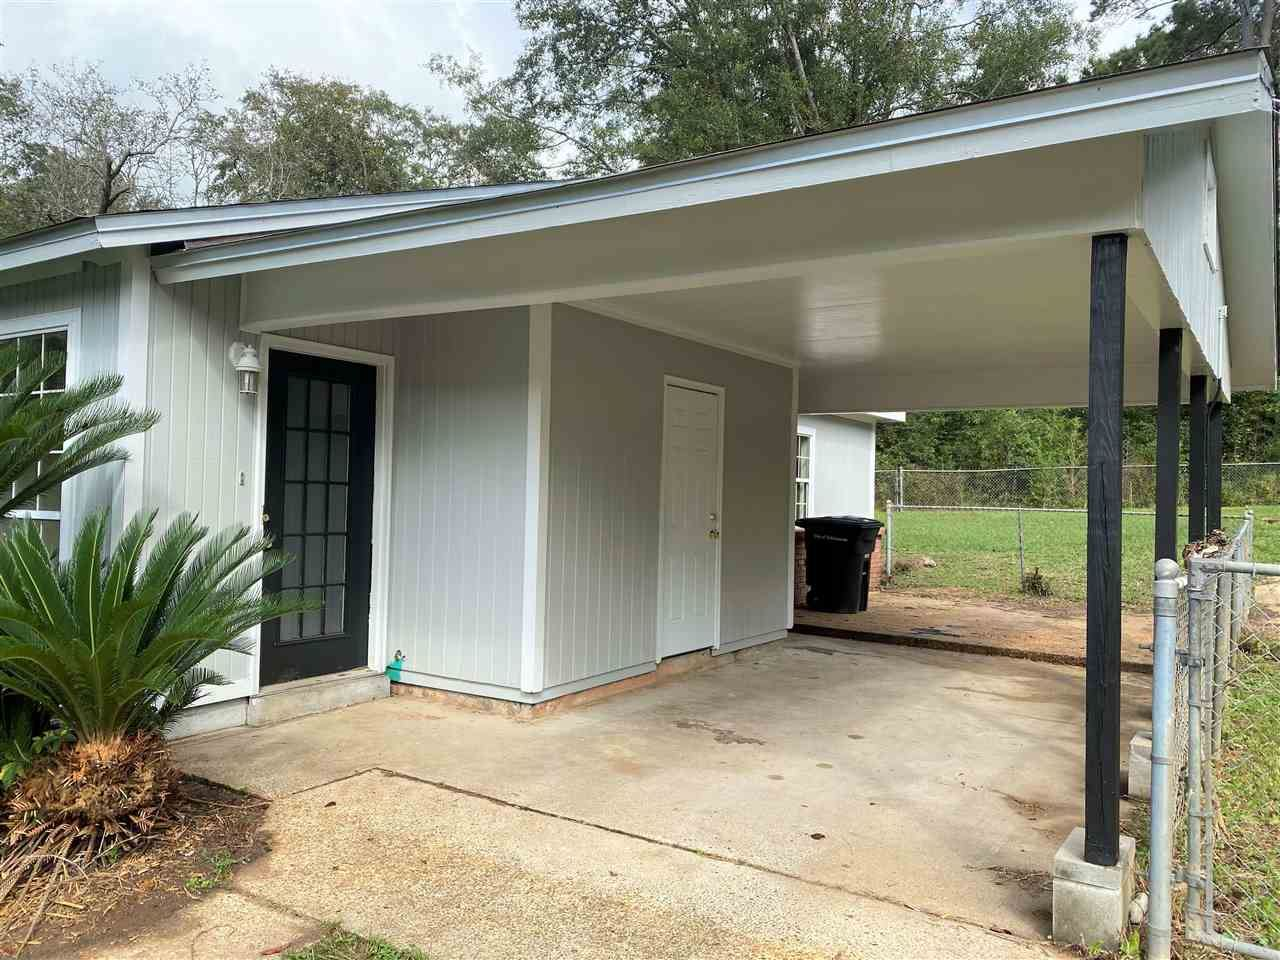 807 Evelyn Court, Tallahassee, FL 32302 - MLS#: 325489